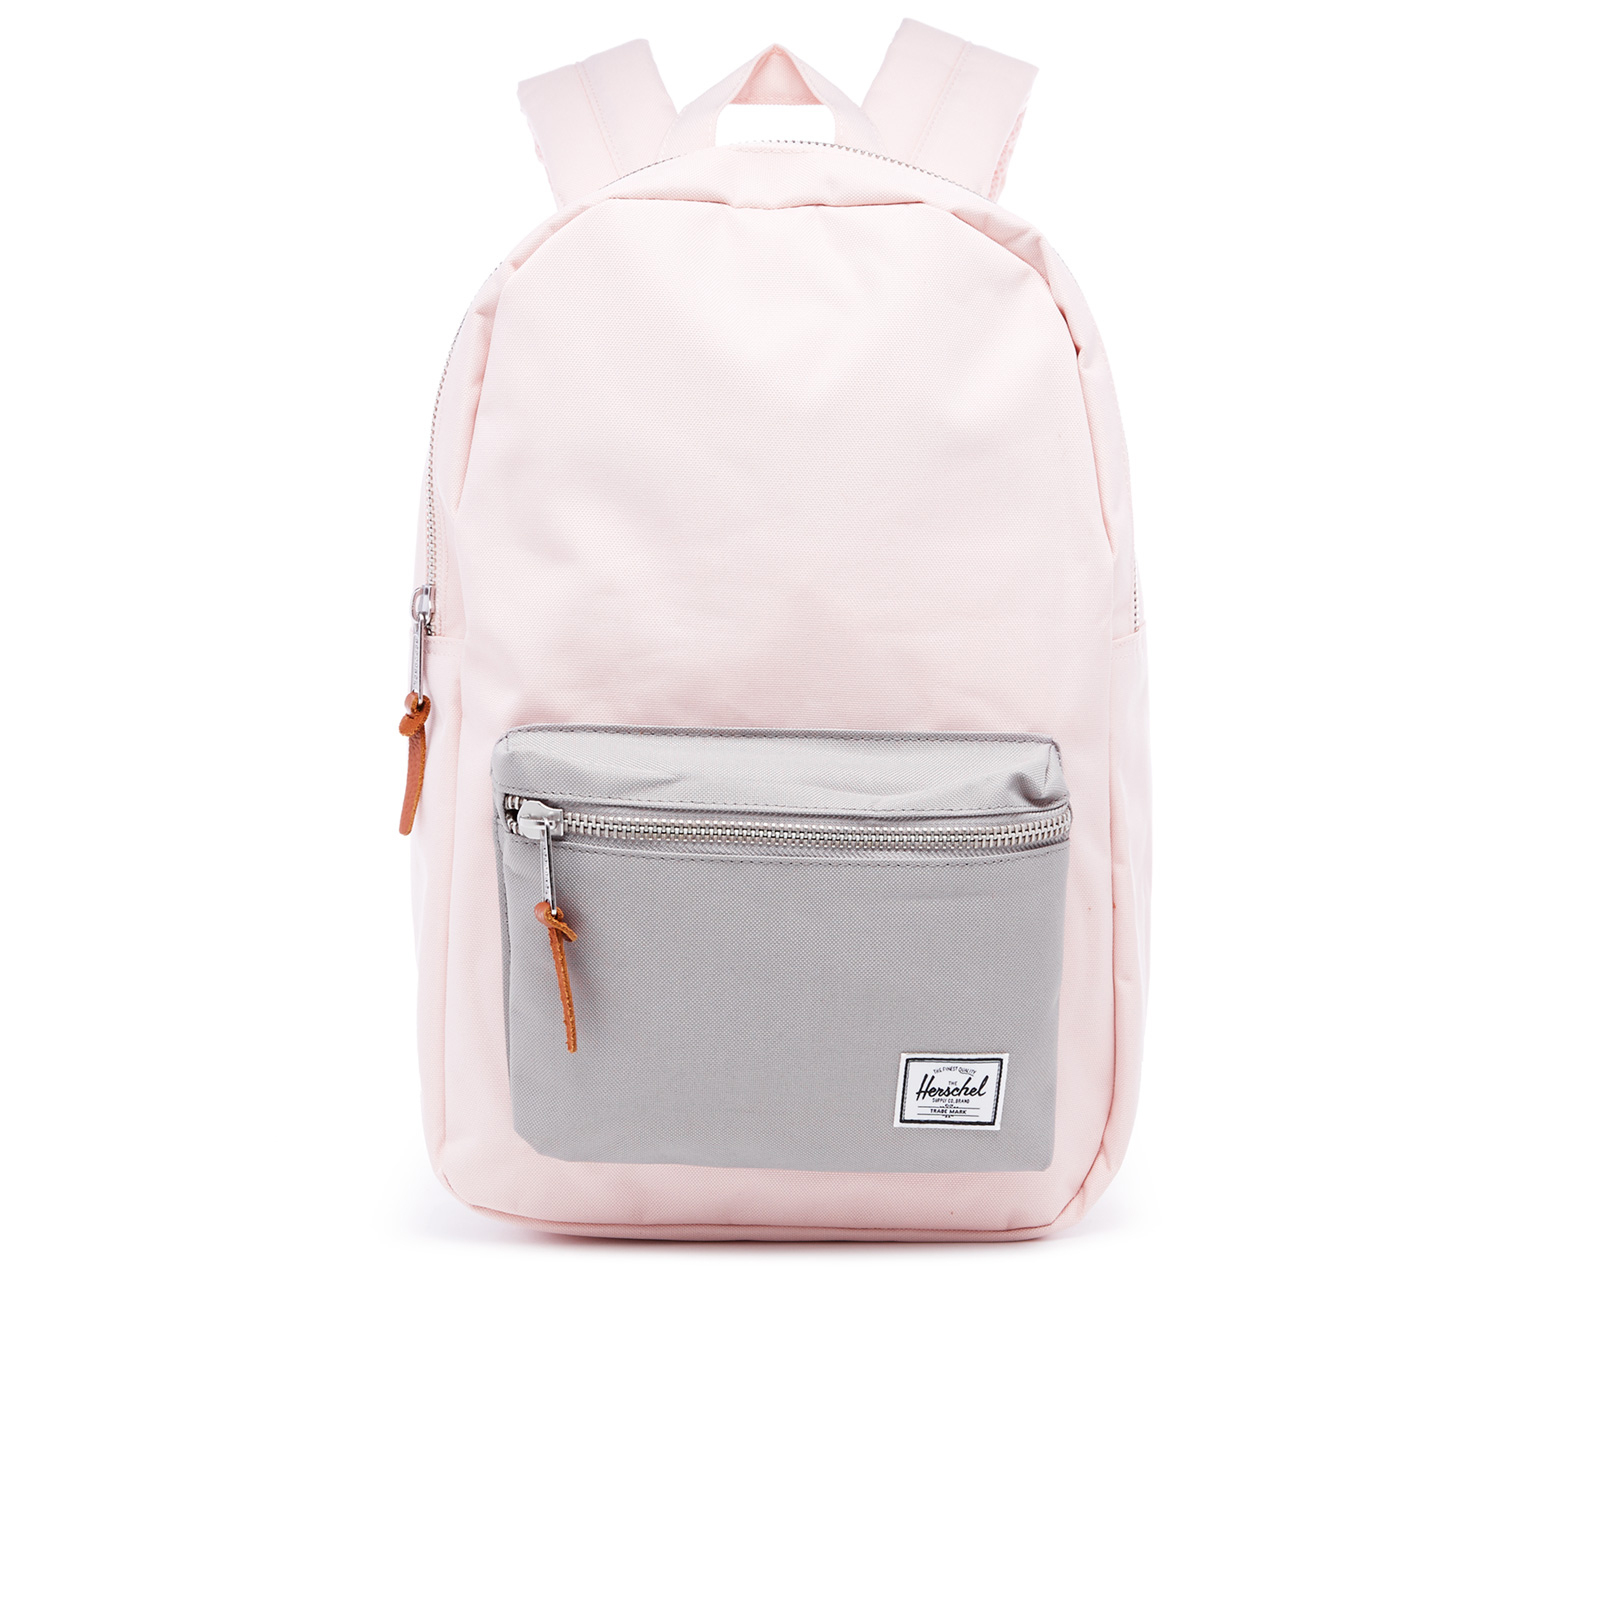 a808f50bb24 Herschel Supply Co. Settlement Backpack - Cloud Pink Ash - Free UK Delivery  over £50